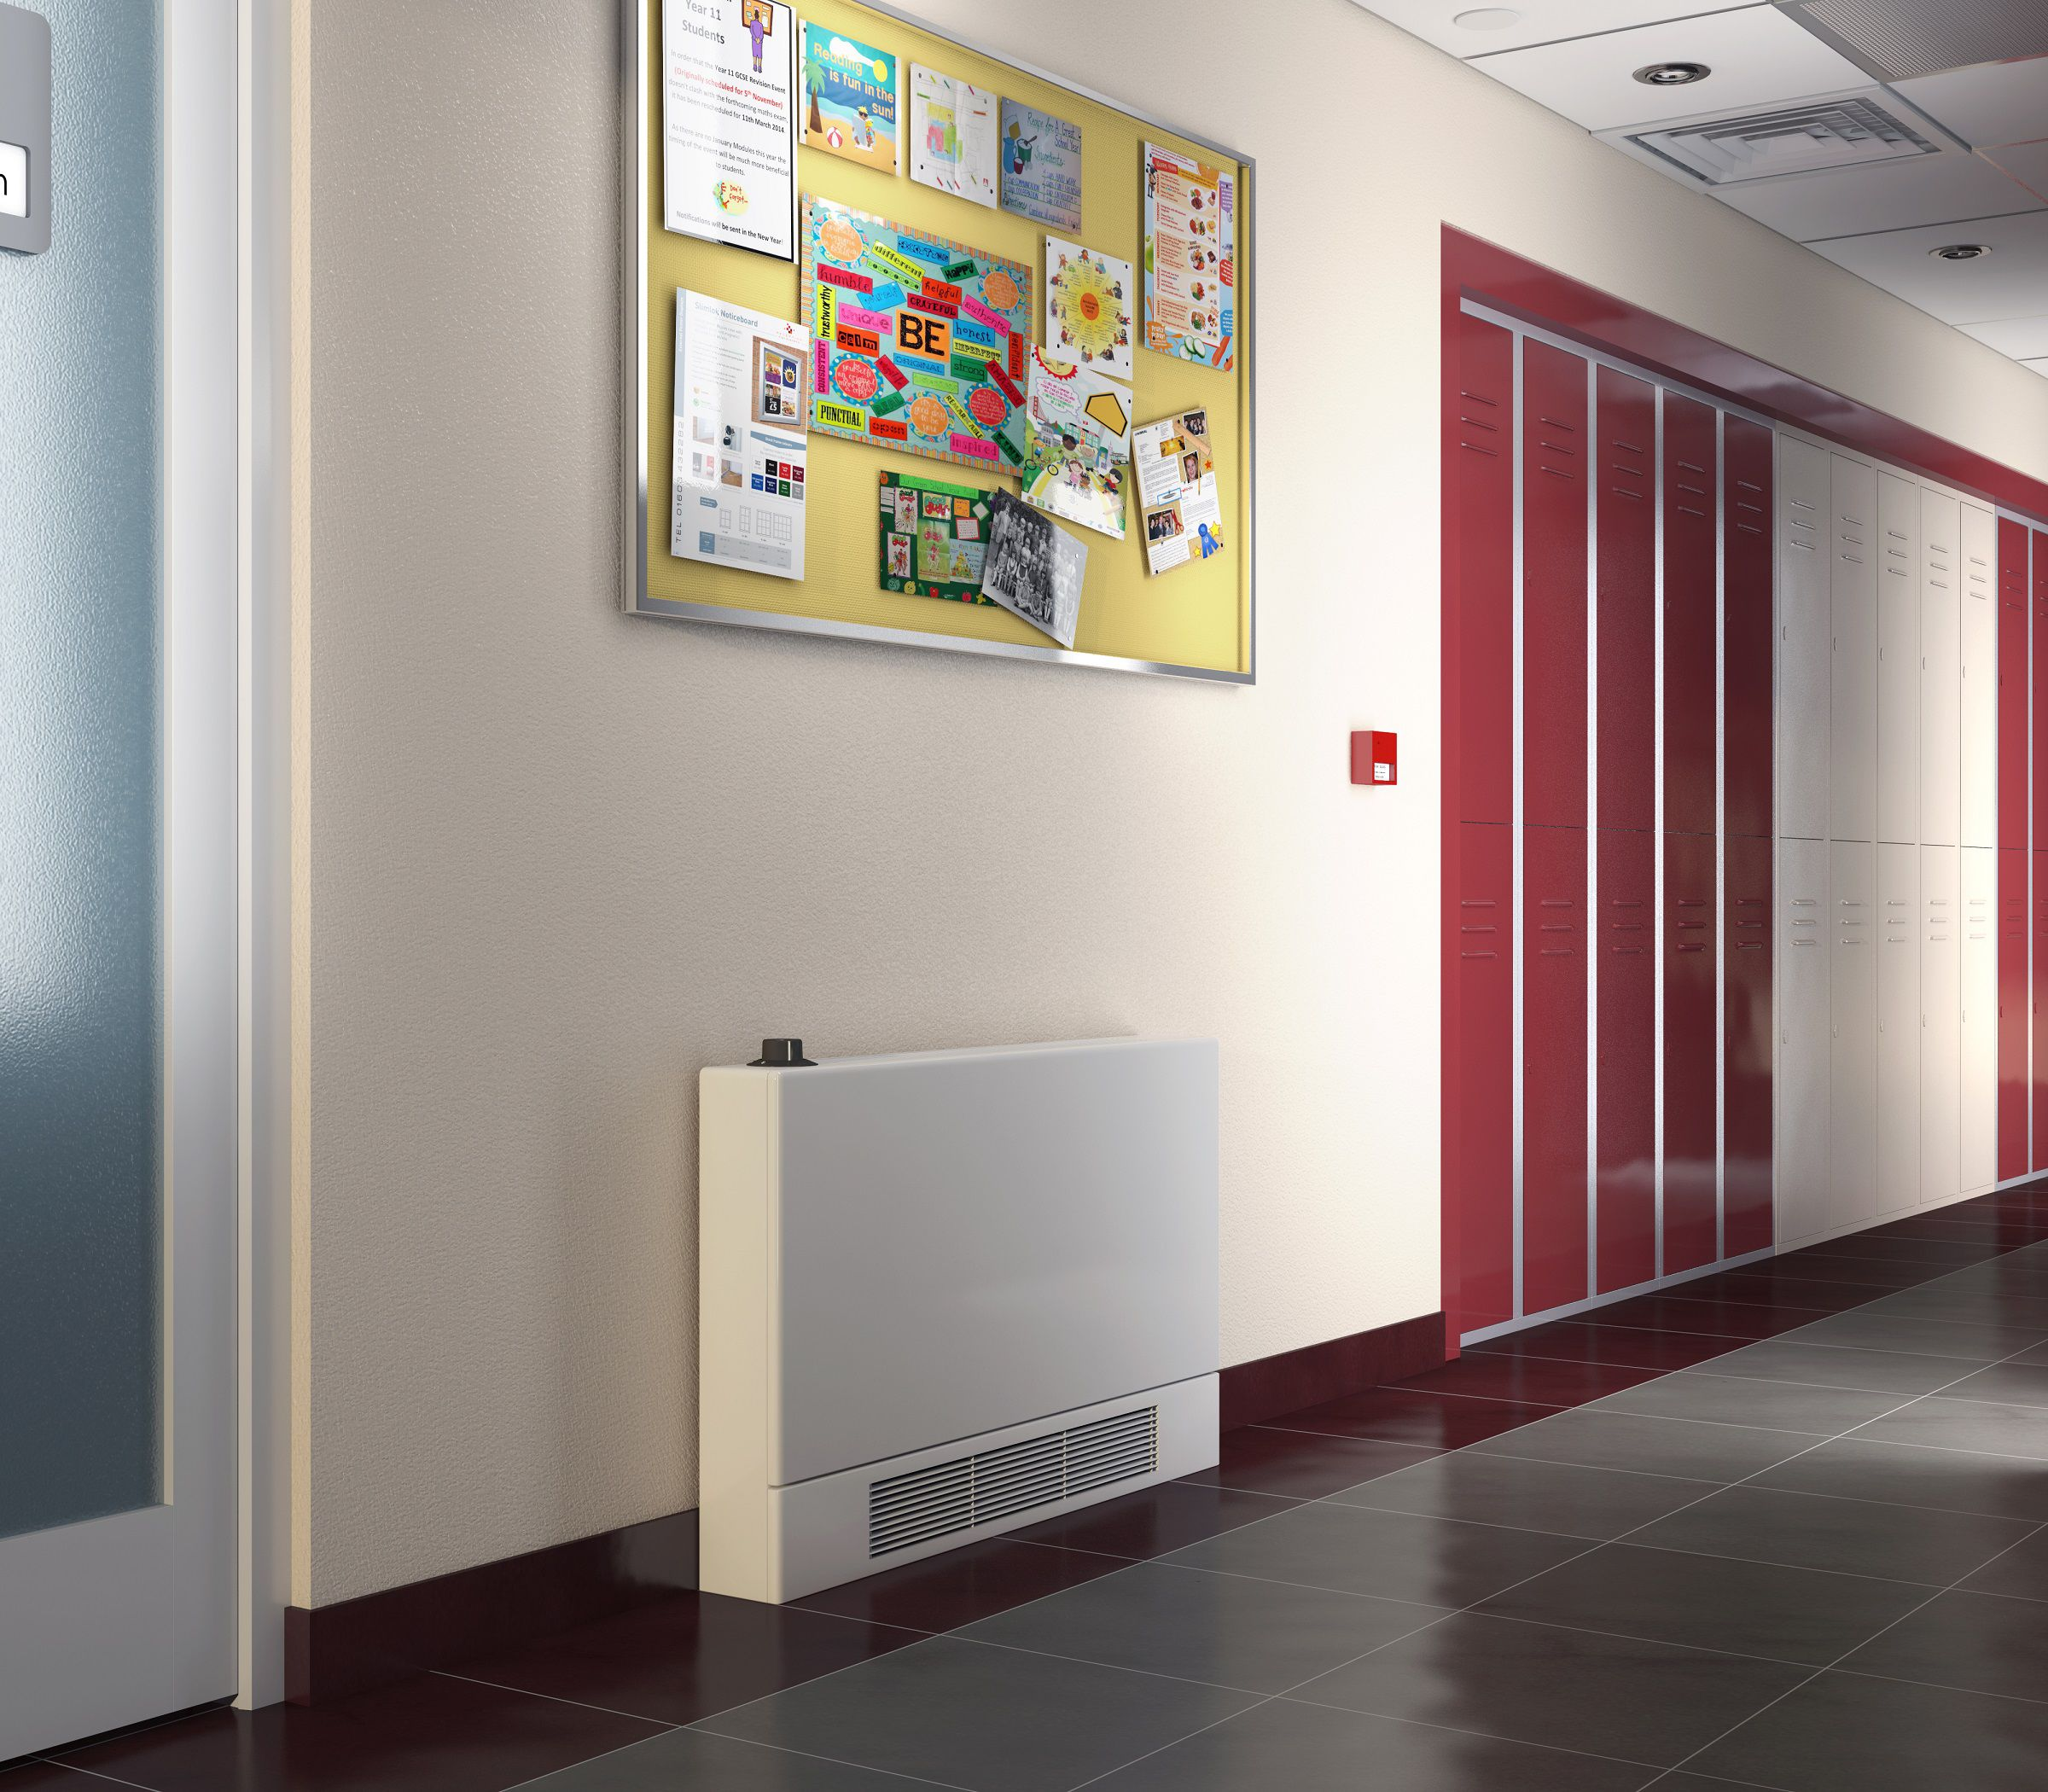 Chris Harvey, low surface temperature, LST, radiators, Stelrad Radiator Group